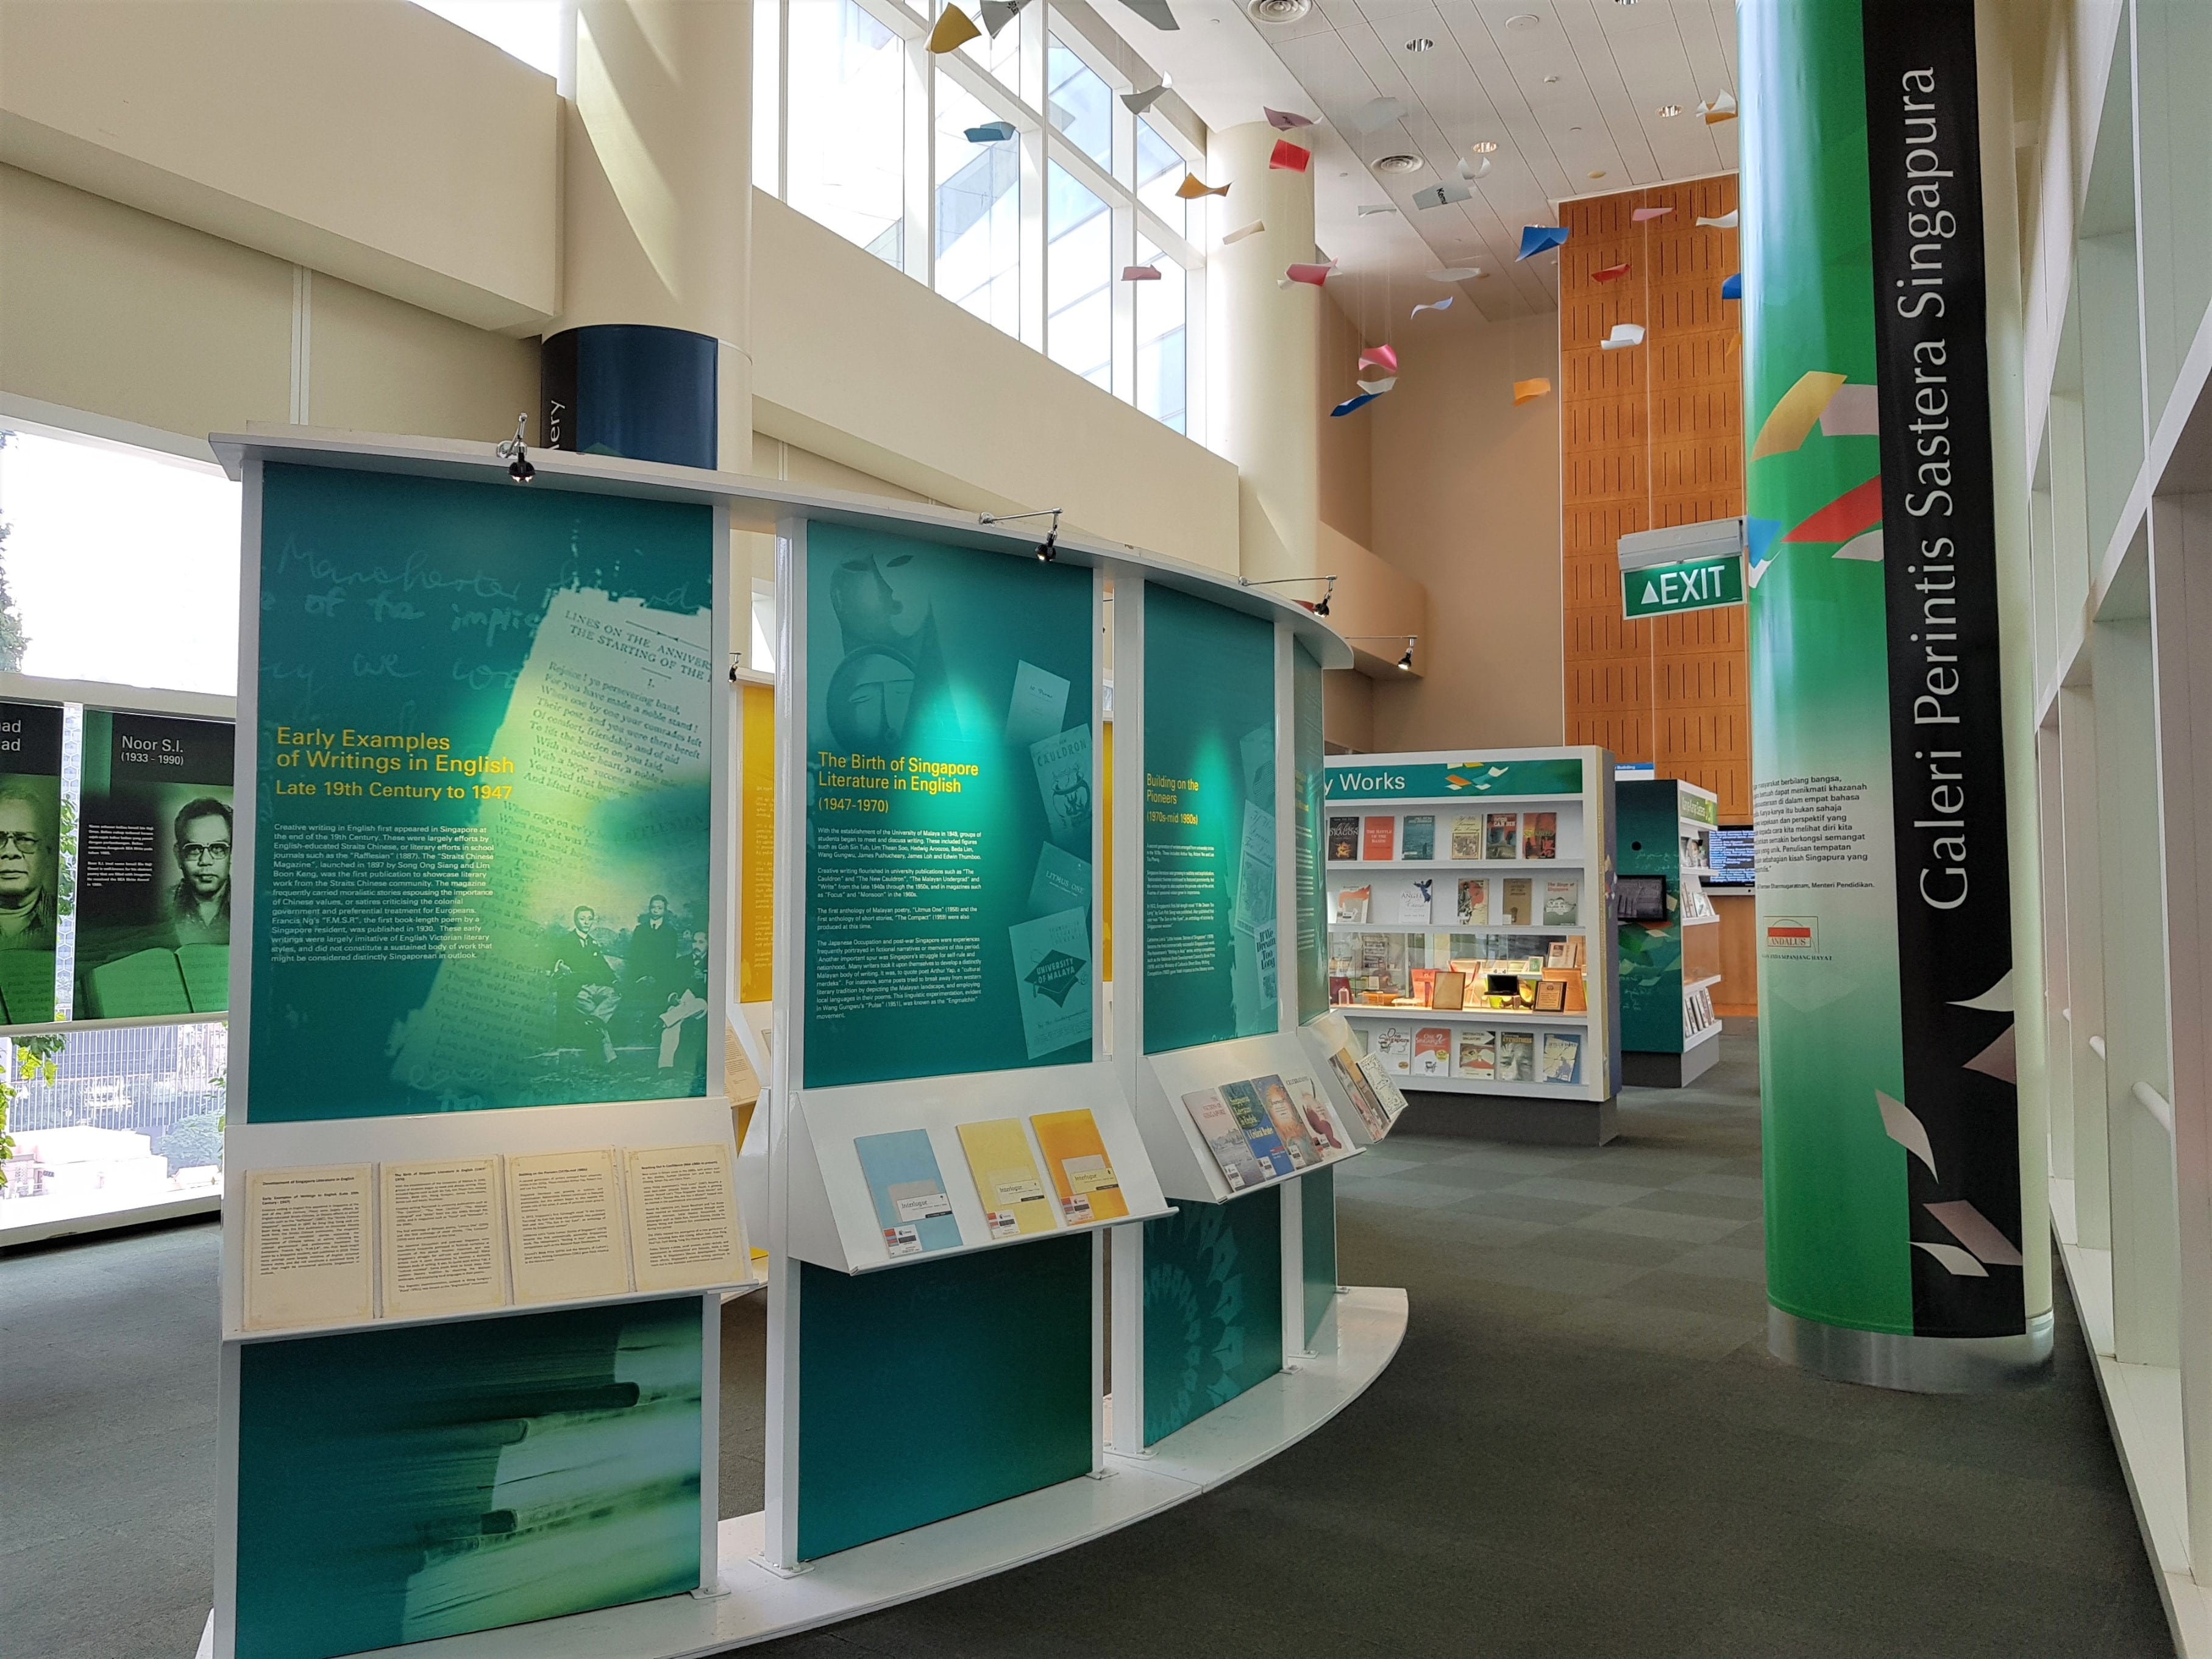 Another view of the green information wall.